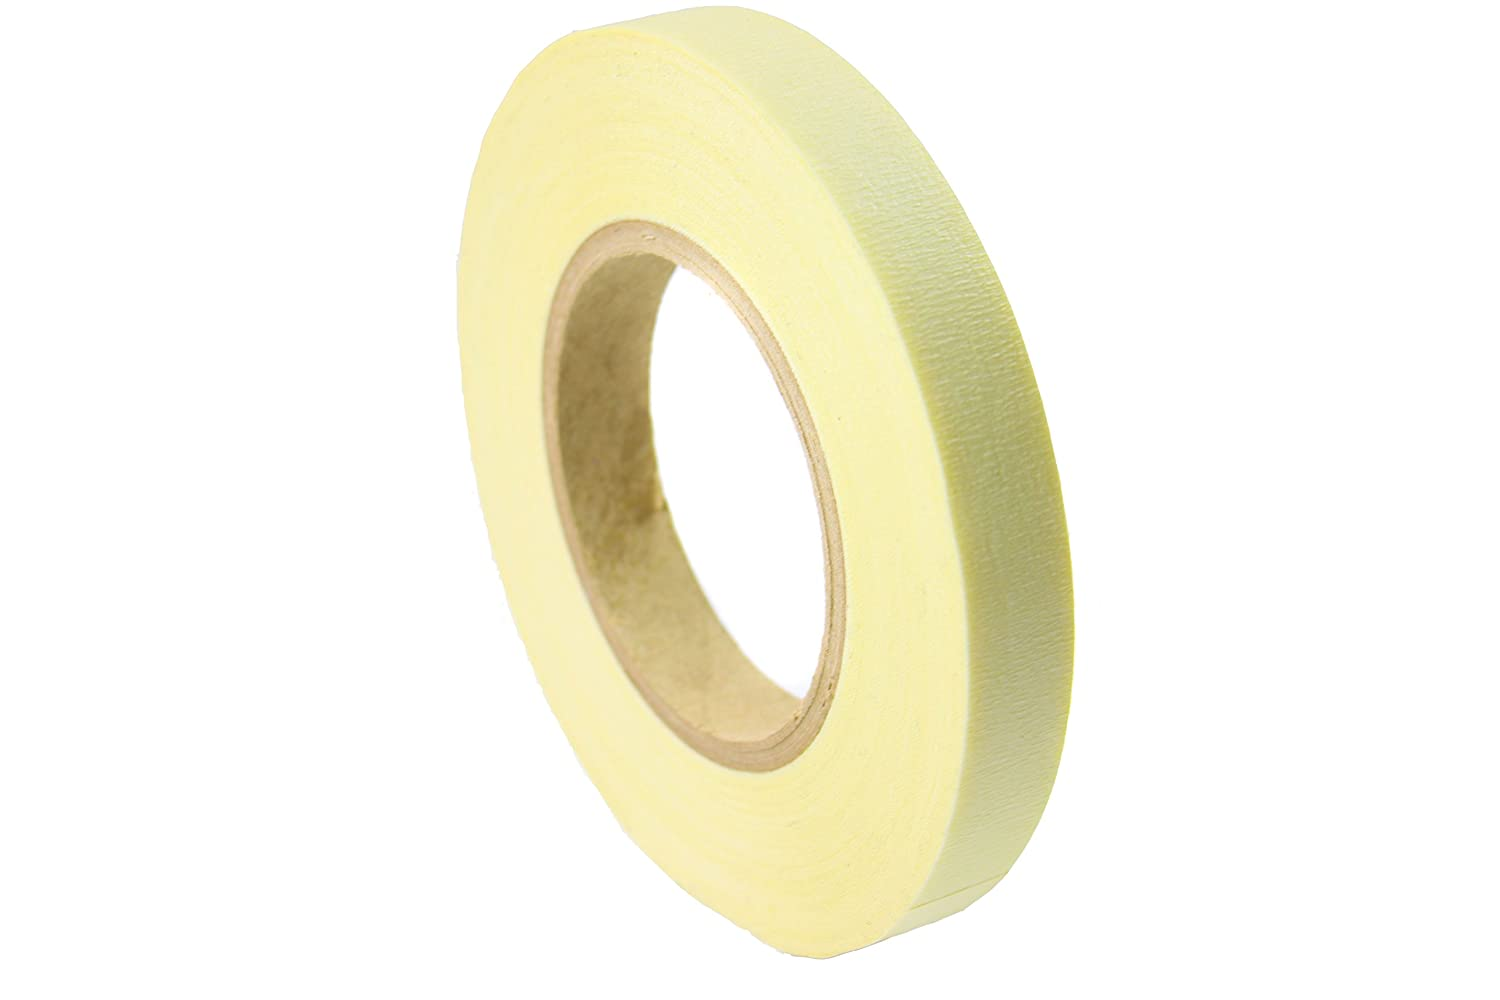 CS Hyde 17-FibG-DS Double Sided Fiberglass Tape with Silicone Adhesive 1.5 x 36 Yards